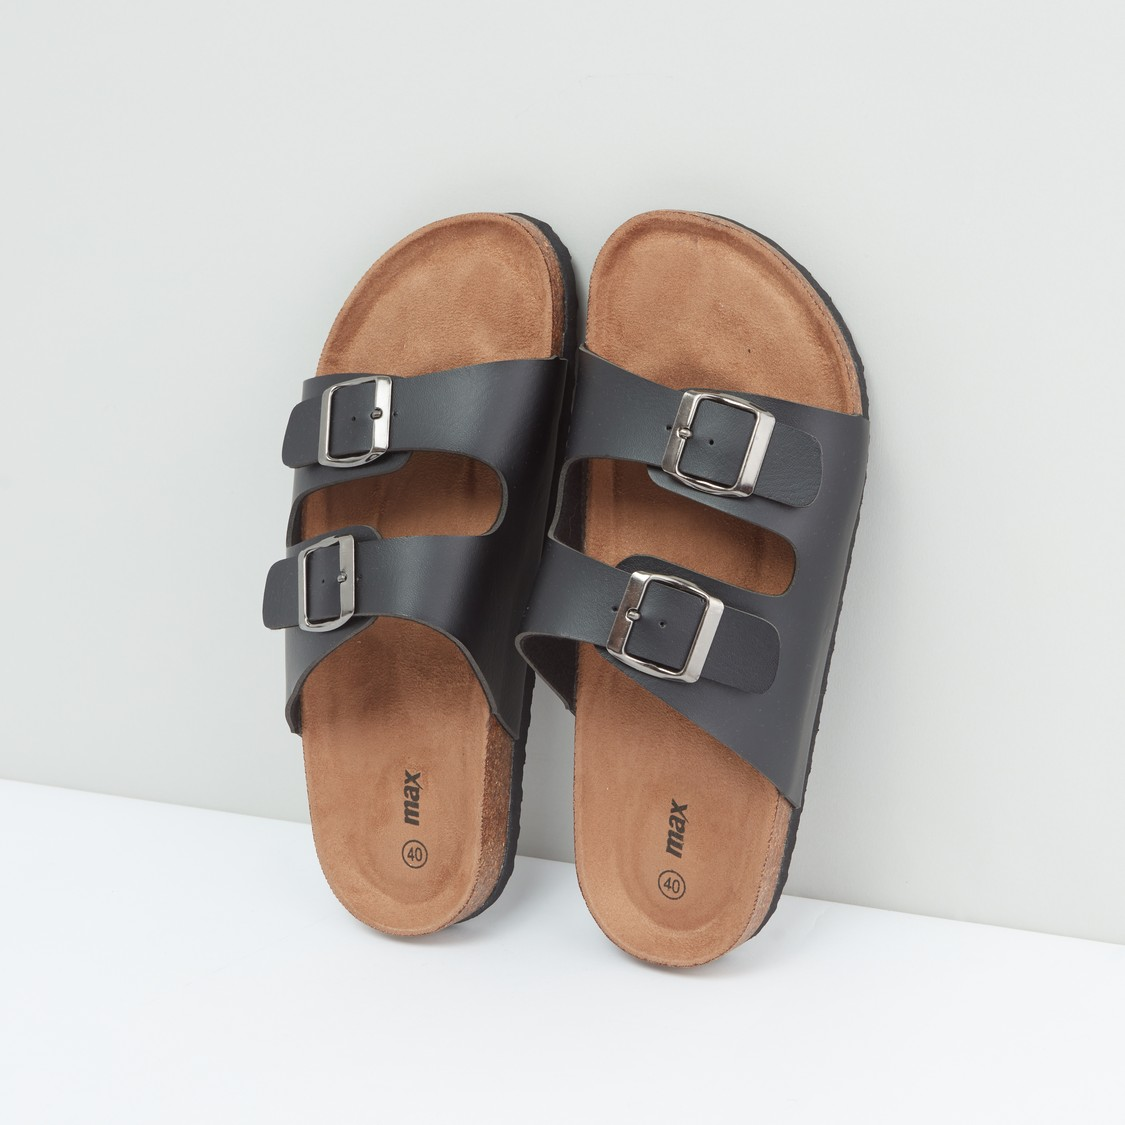 Dual Strap Sandals with Pin Buckle Closure